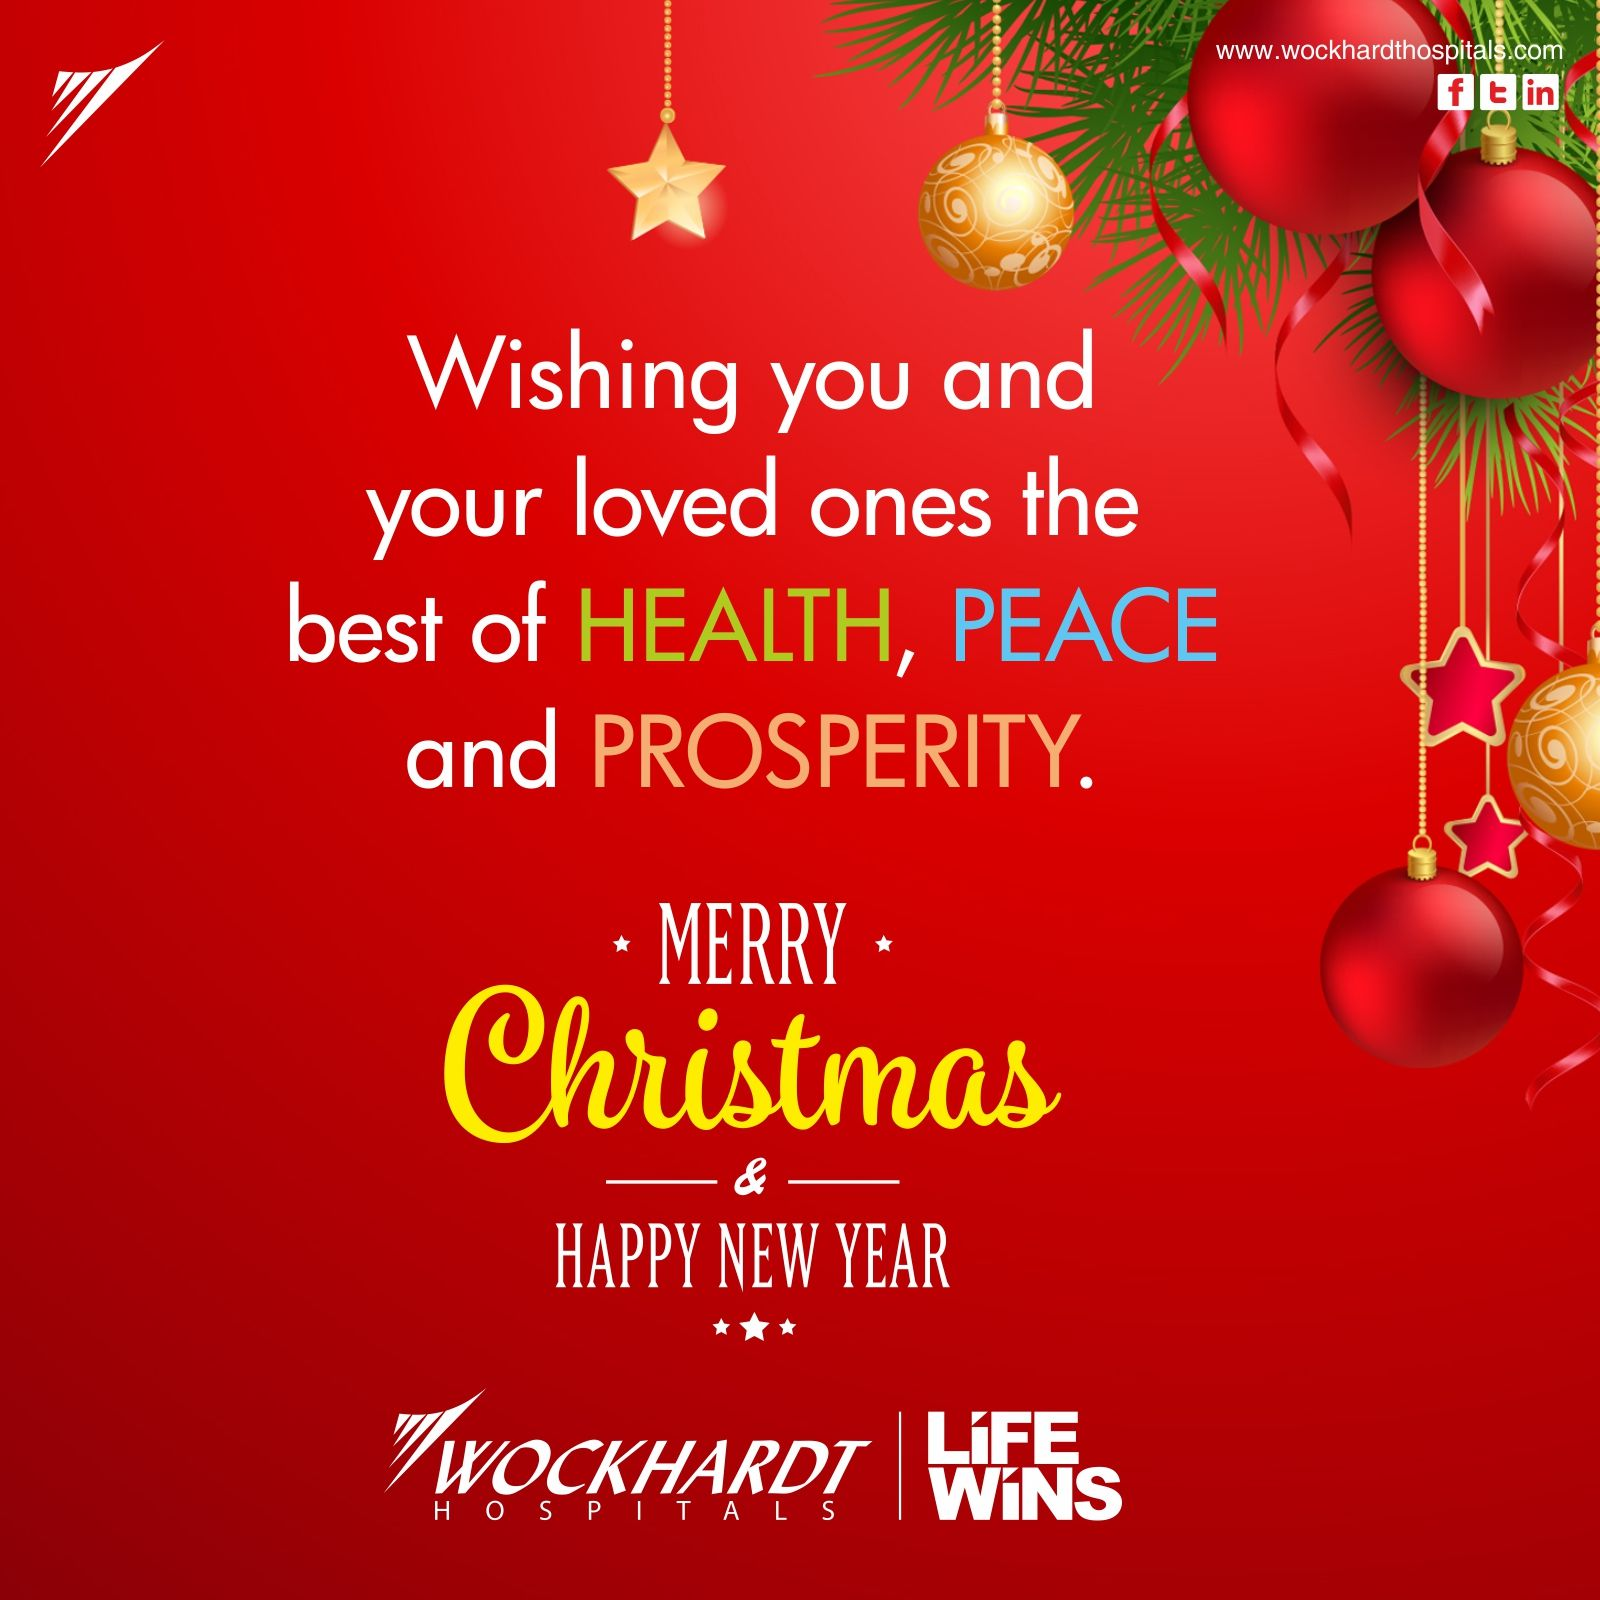 Merry Christmas To All From Wockhardt Hospitals Merry Christmas And Happy New Year Merry Christmas To All Merry Christmas